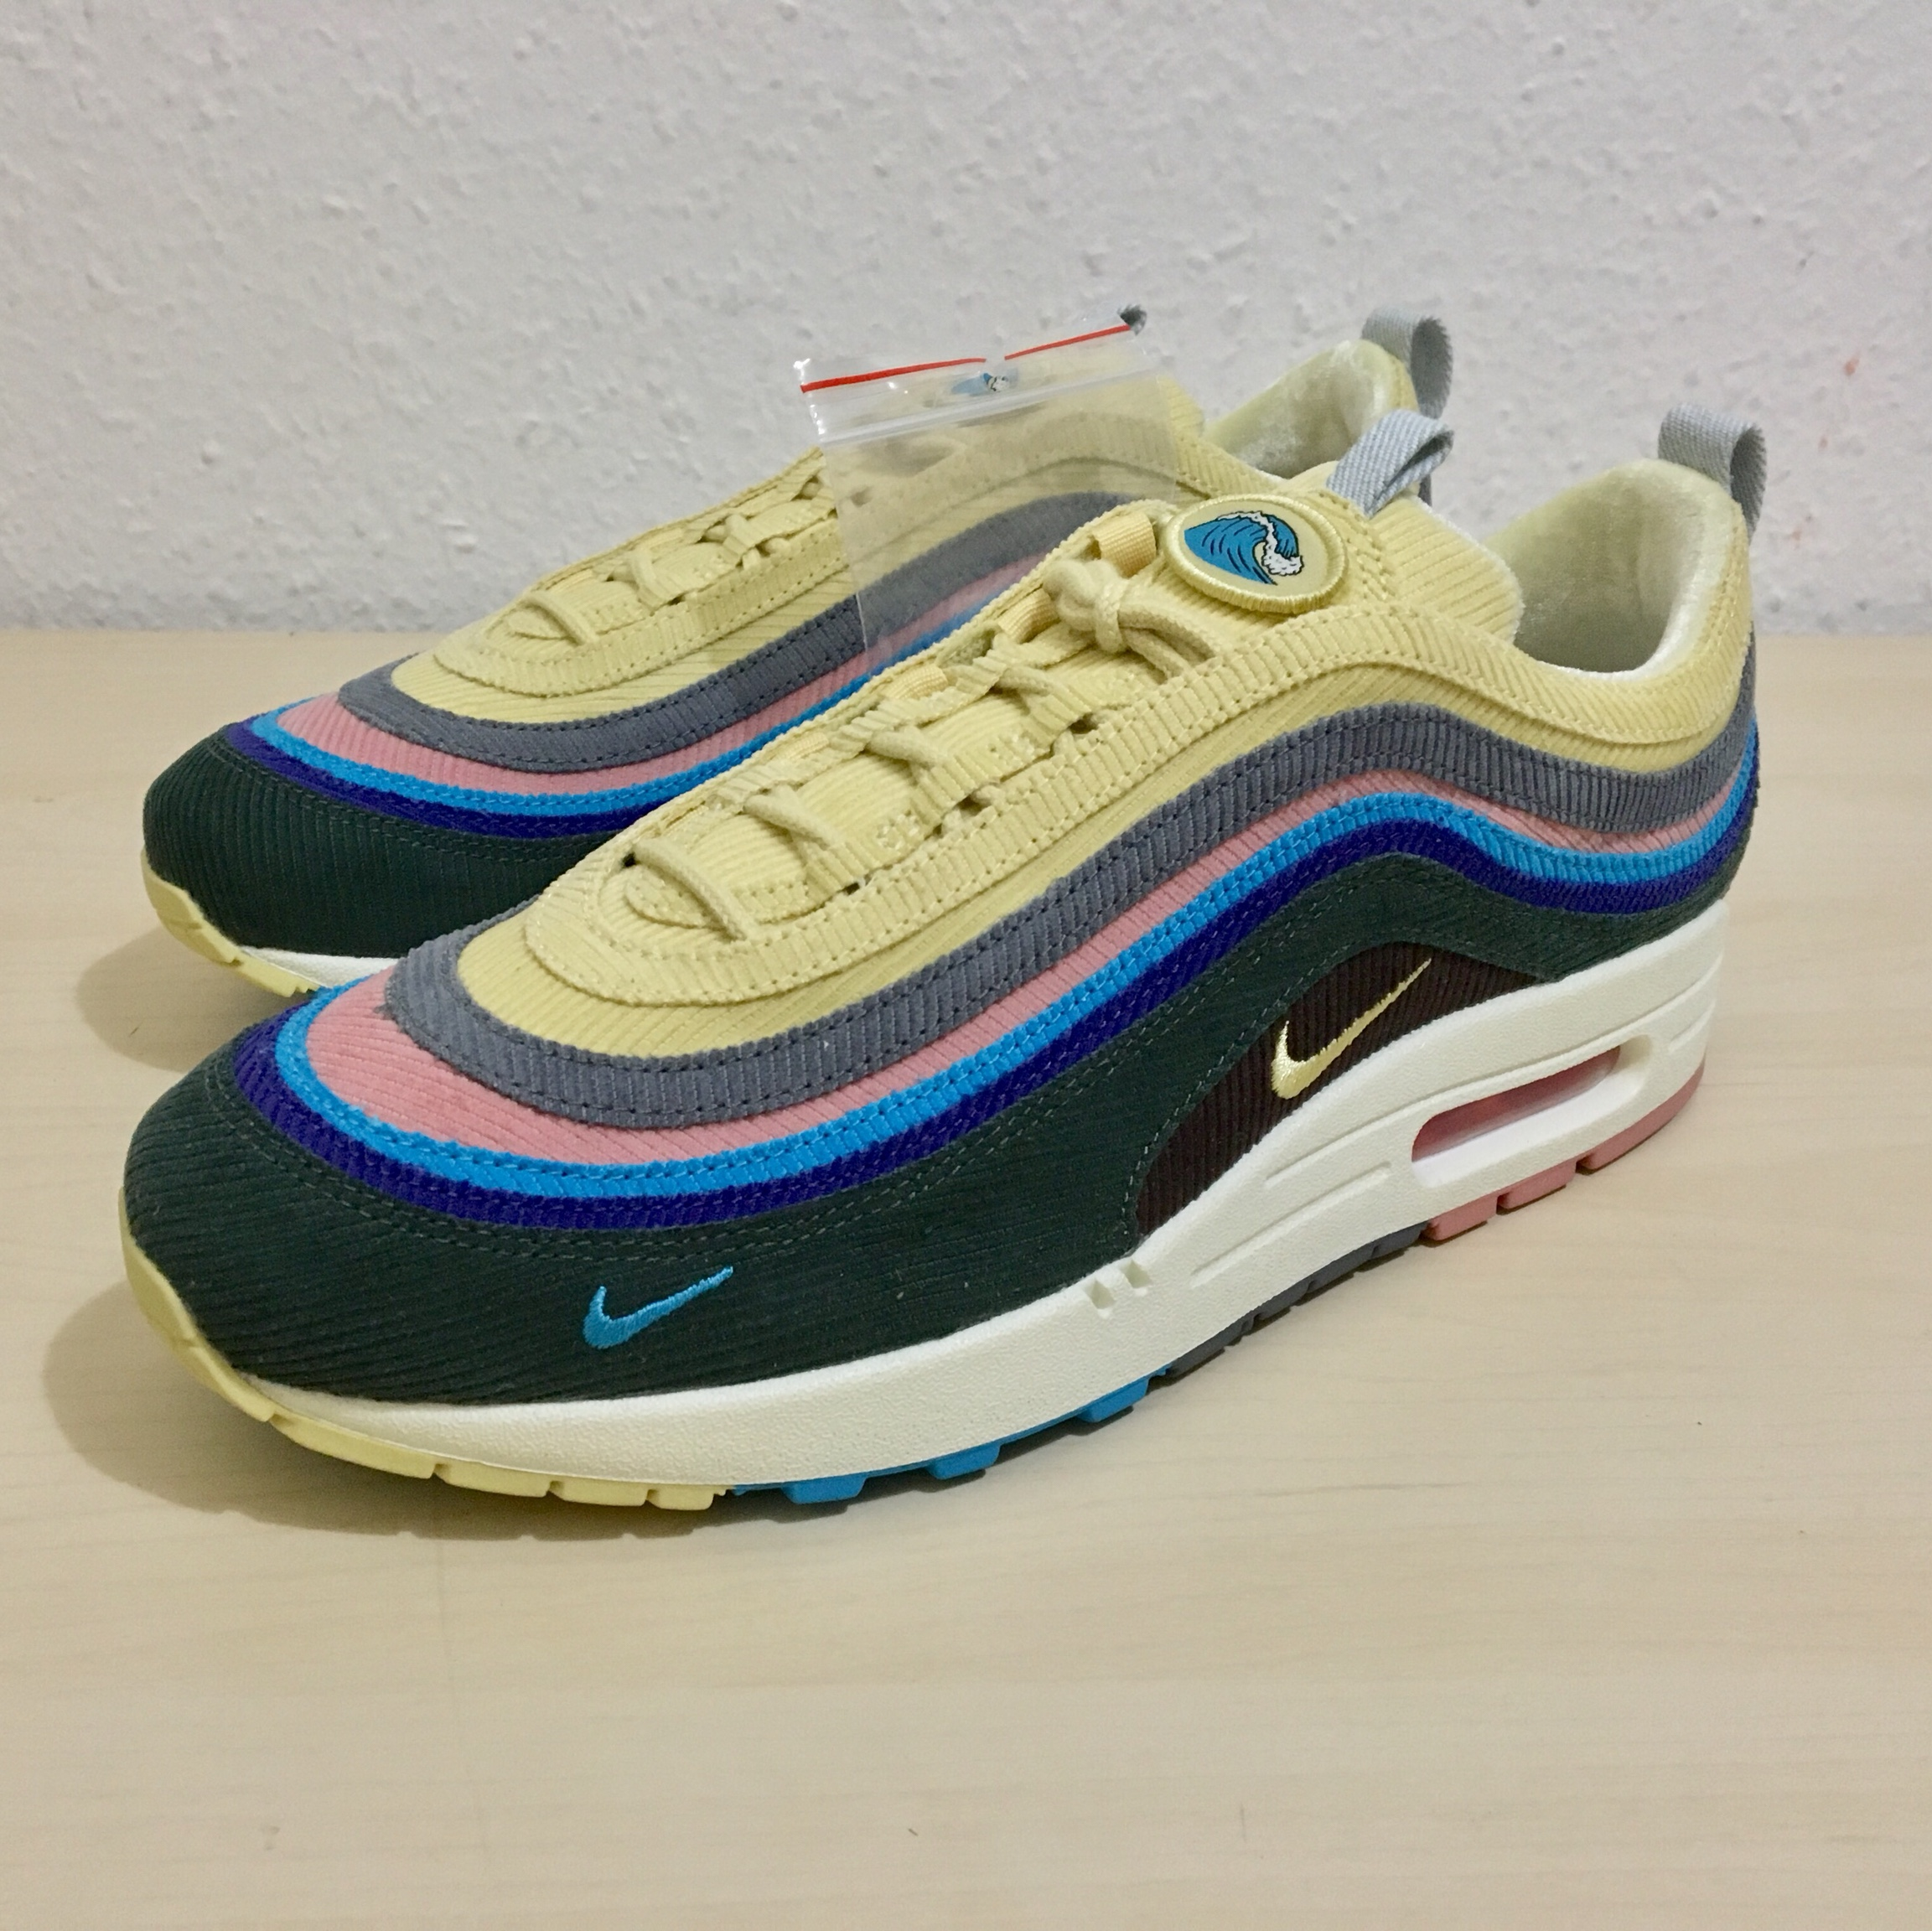 sneakers for cheap c6f42 4f705 Nike Air Max 97/1 Sean Wotherspoon (2018) DS OG... - Depop